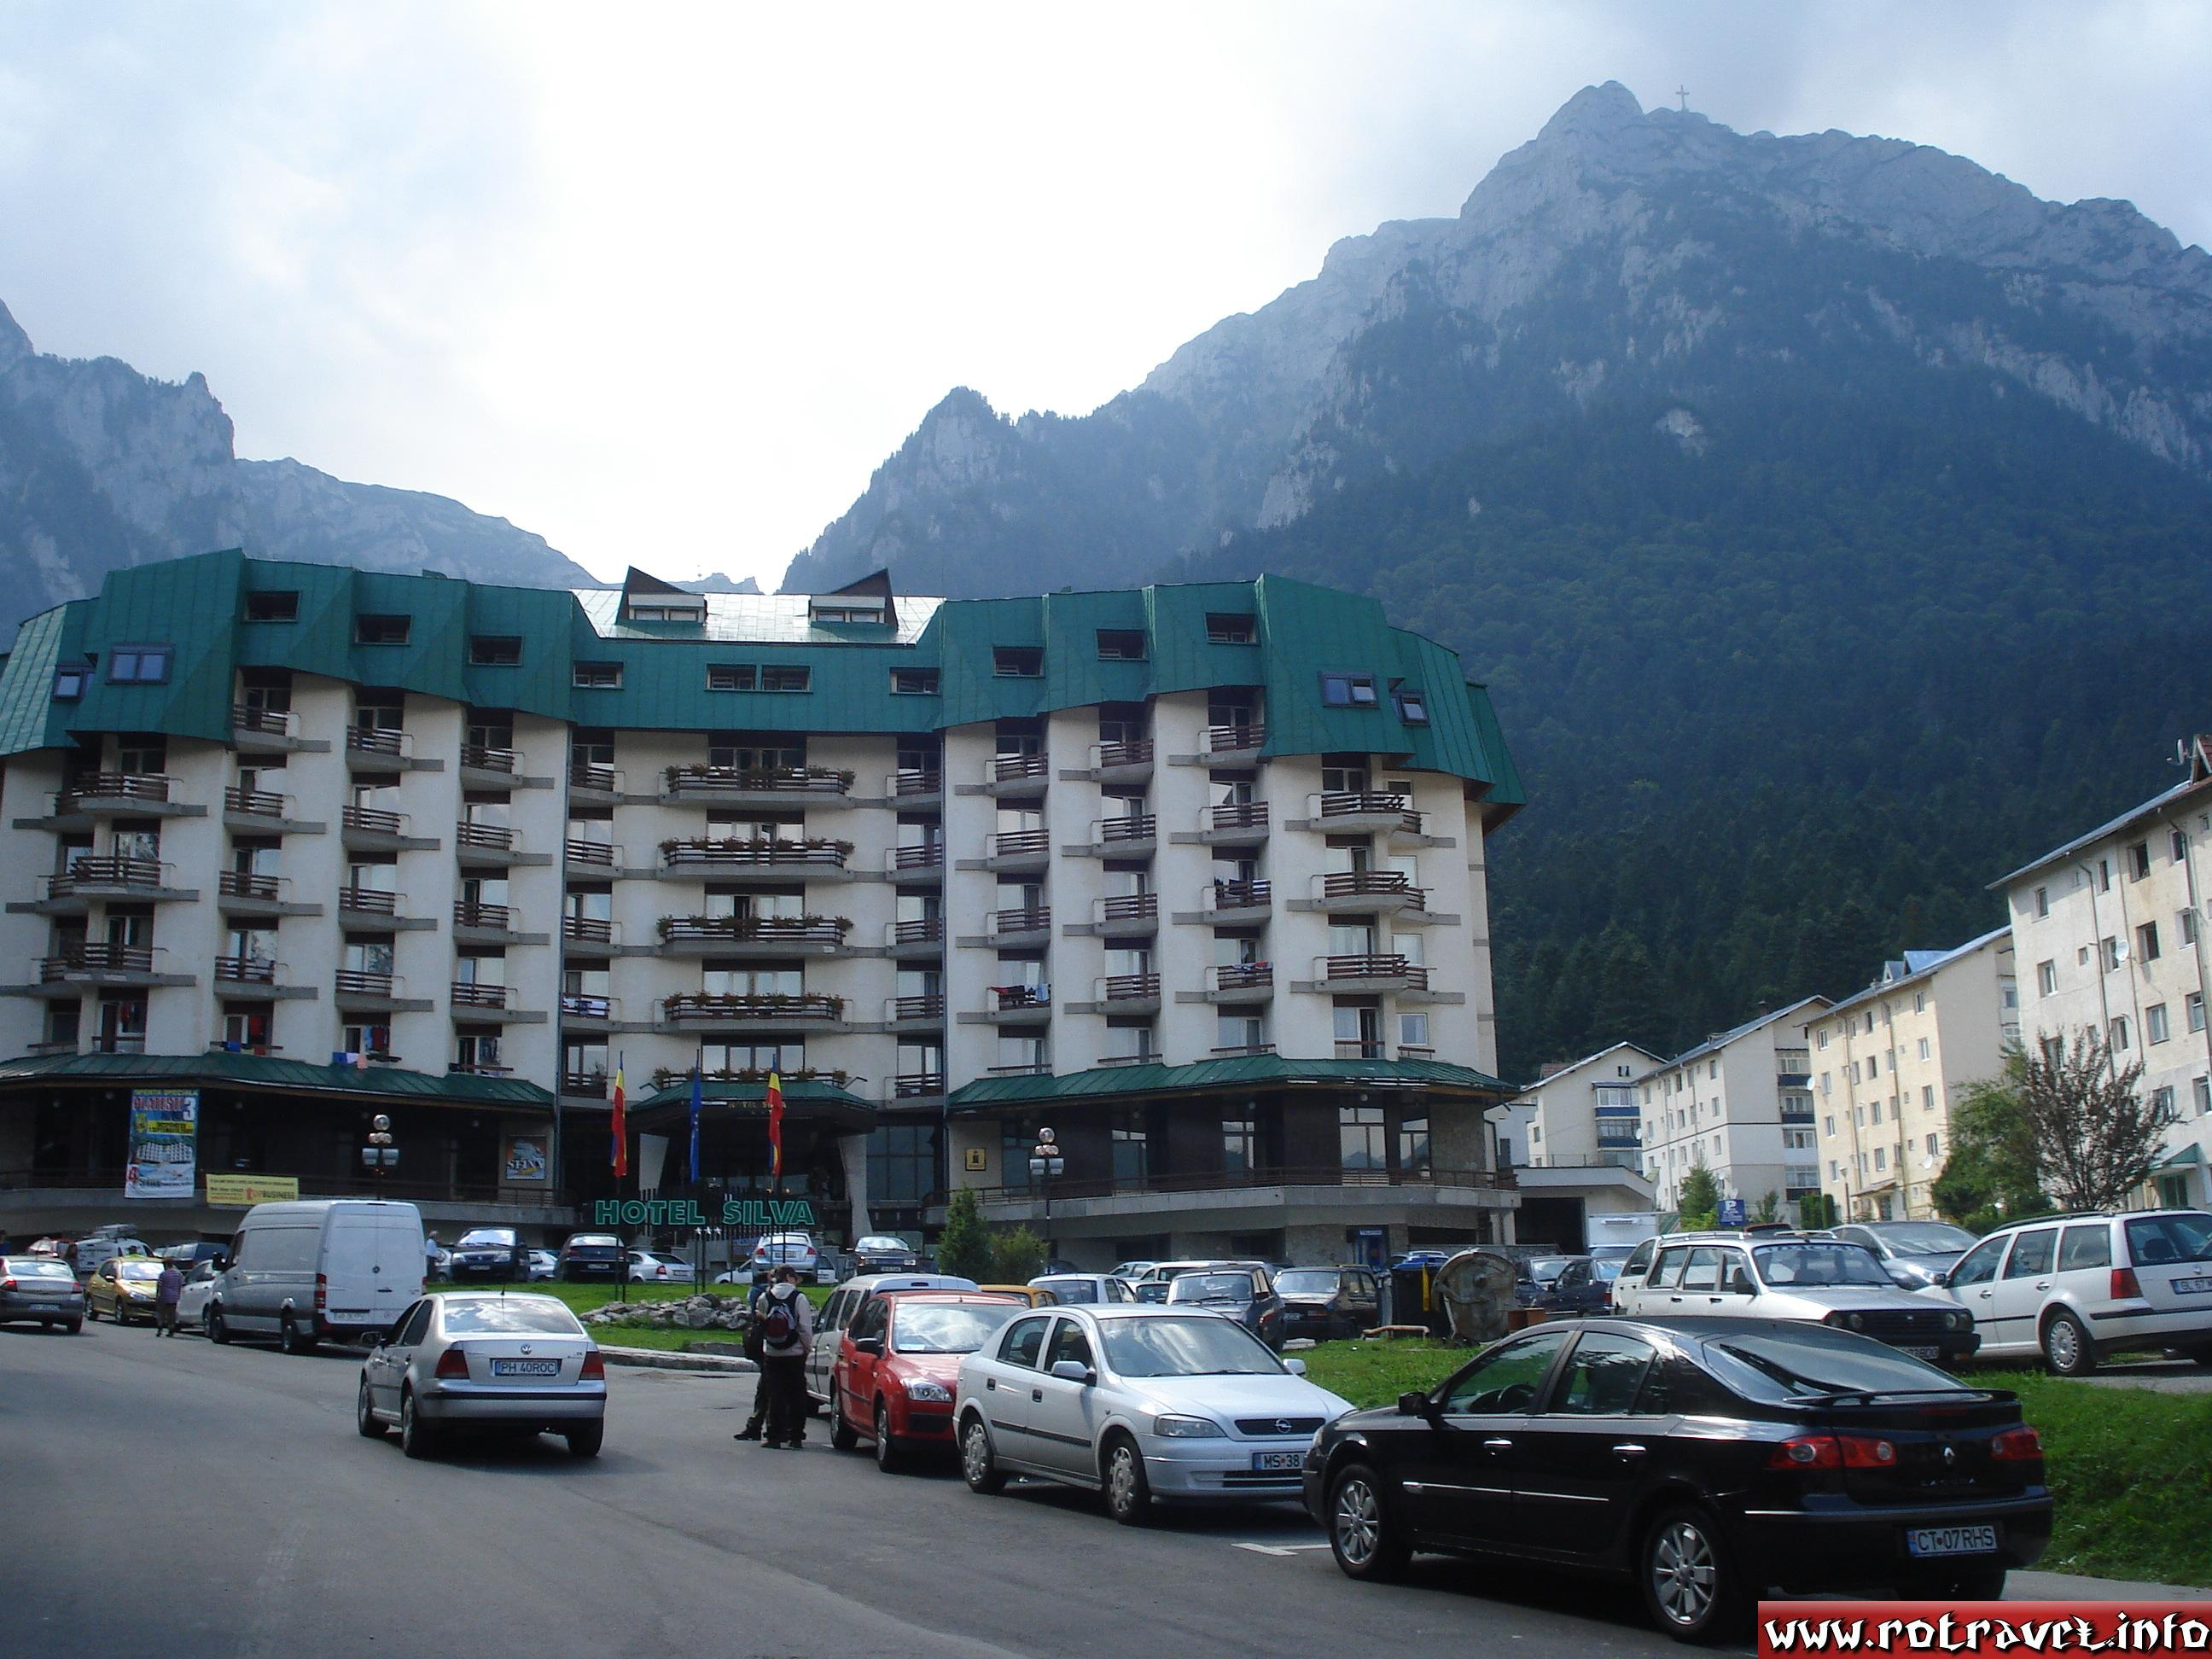 Silva Hotel,a pretty expensive place to spend your vacations..